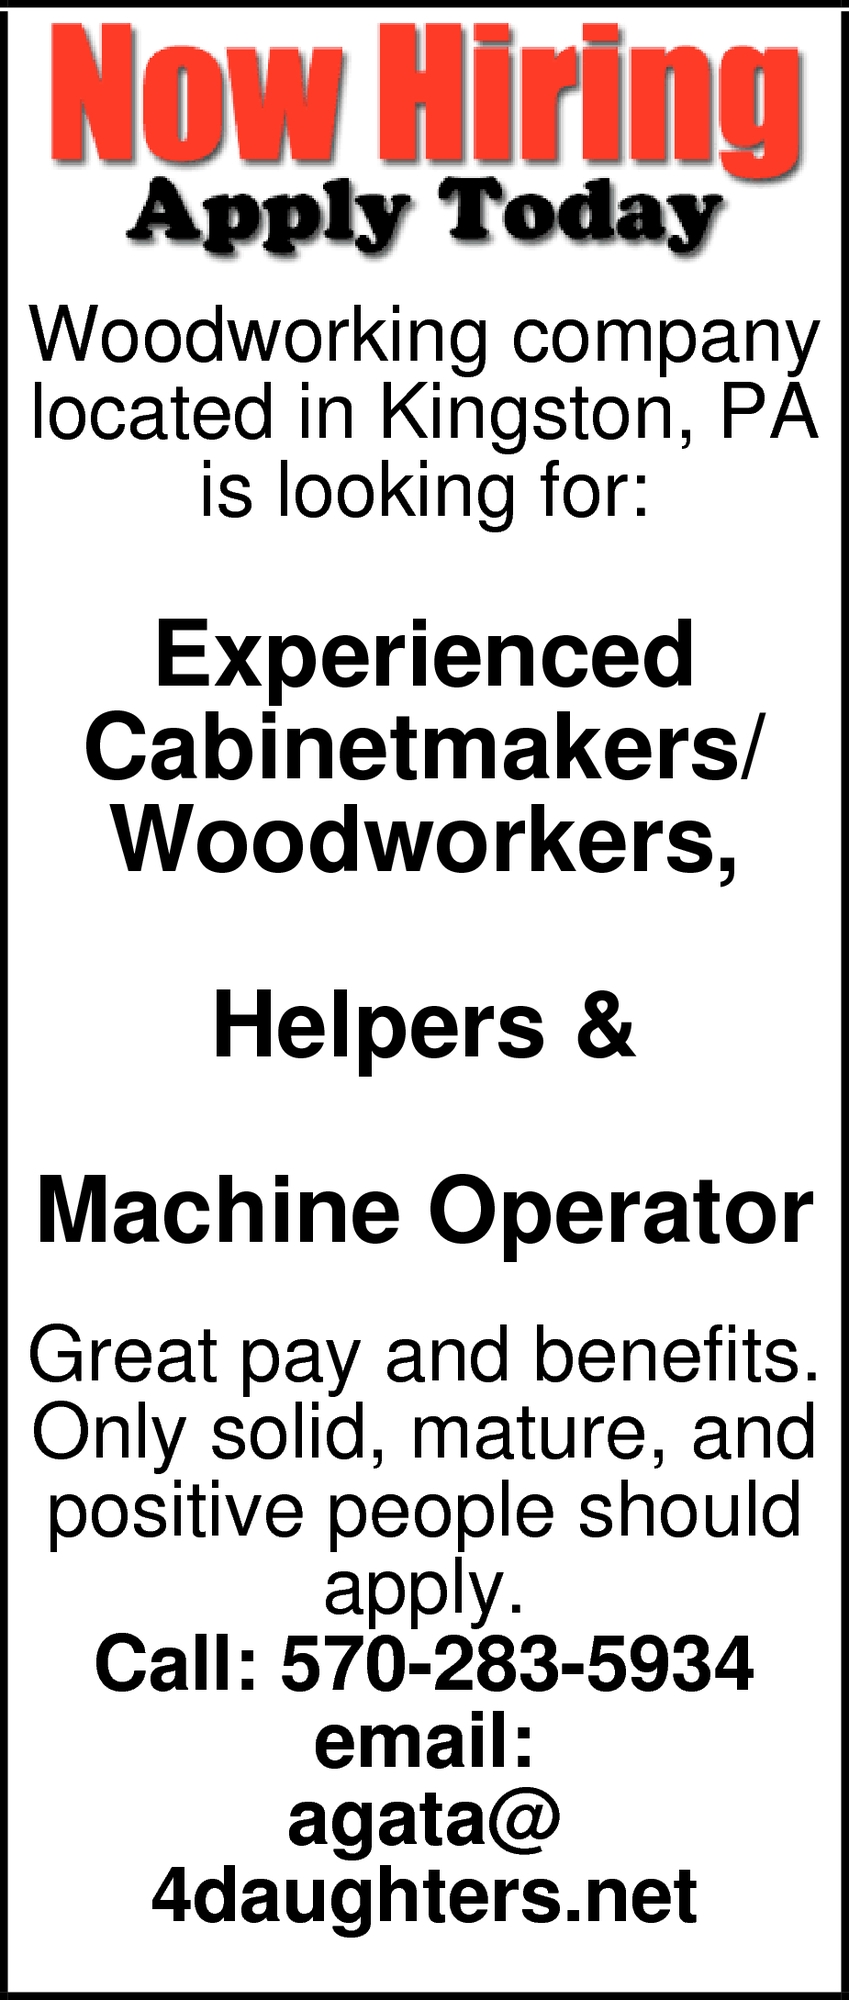 Cabinetmakers Woodworkers Helpers Machine Operator Four Daughters Kingston Pa